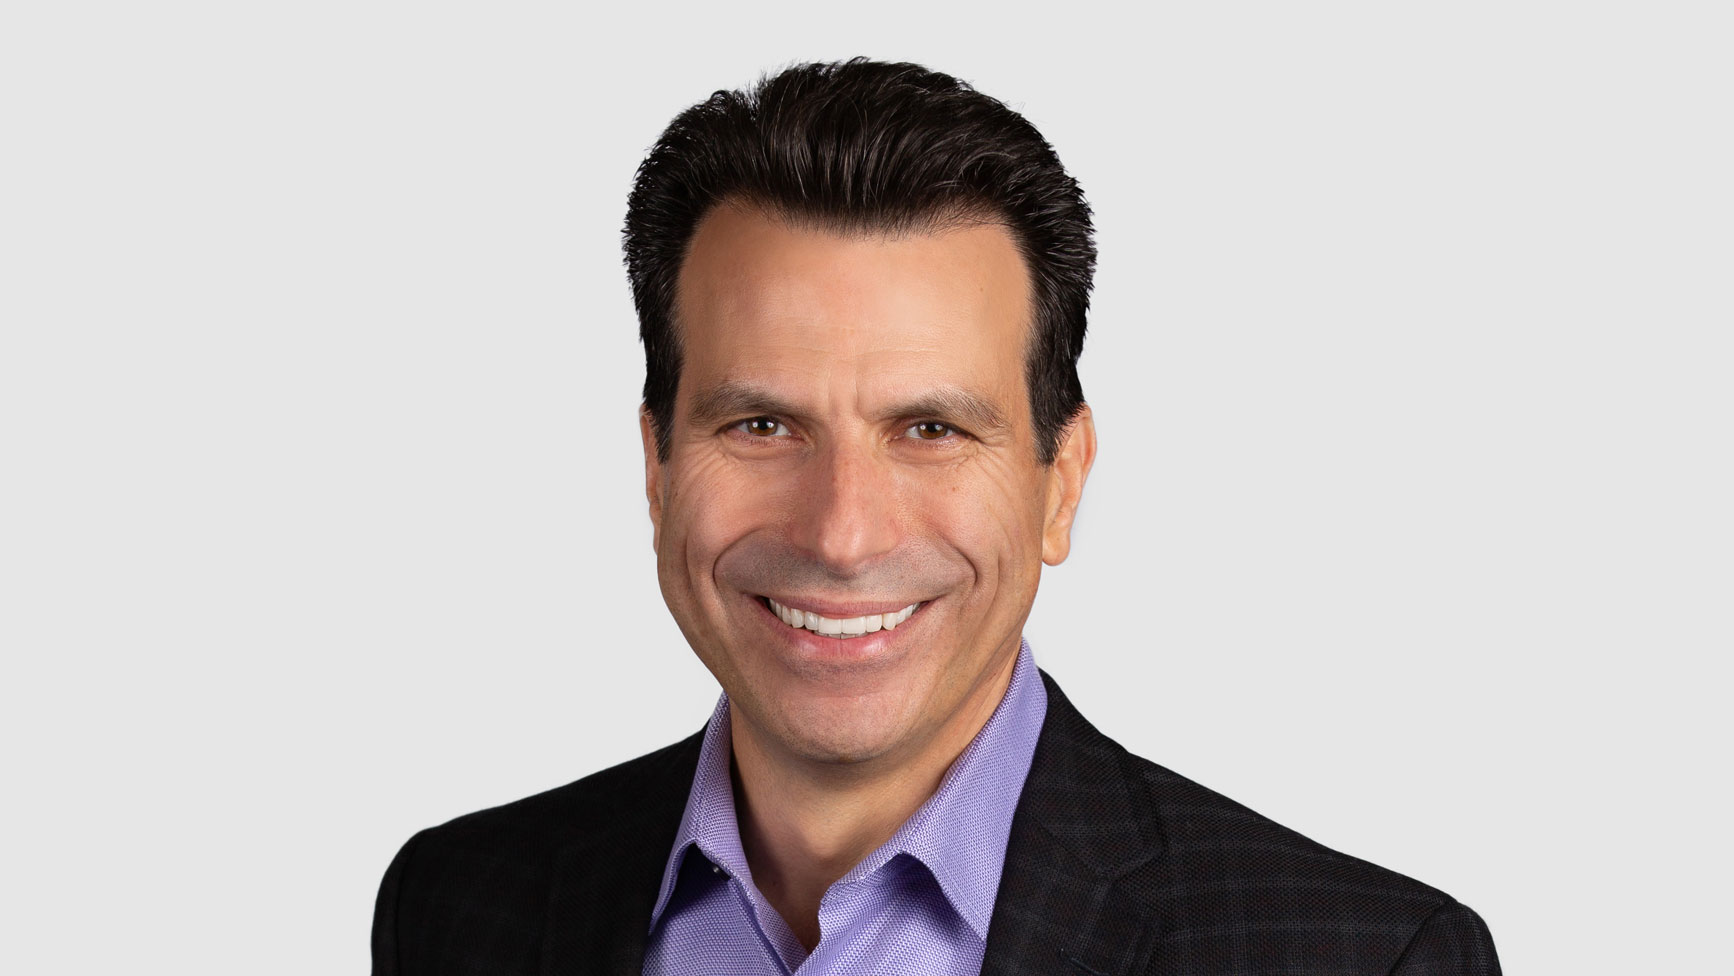 Andrew Anagnost, President and CEO, Autodesk.